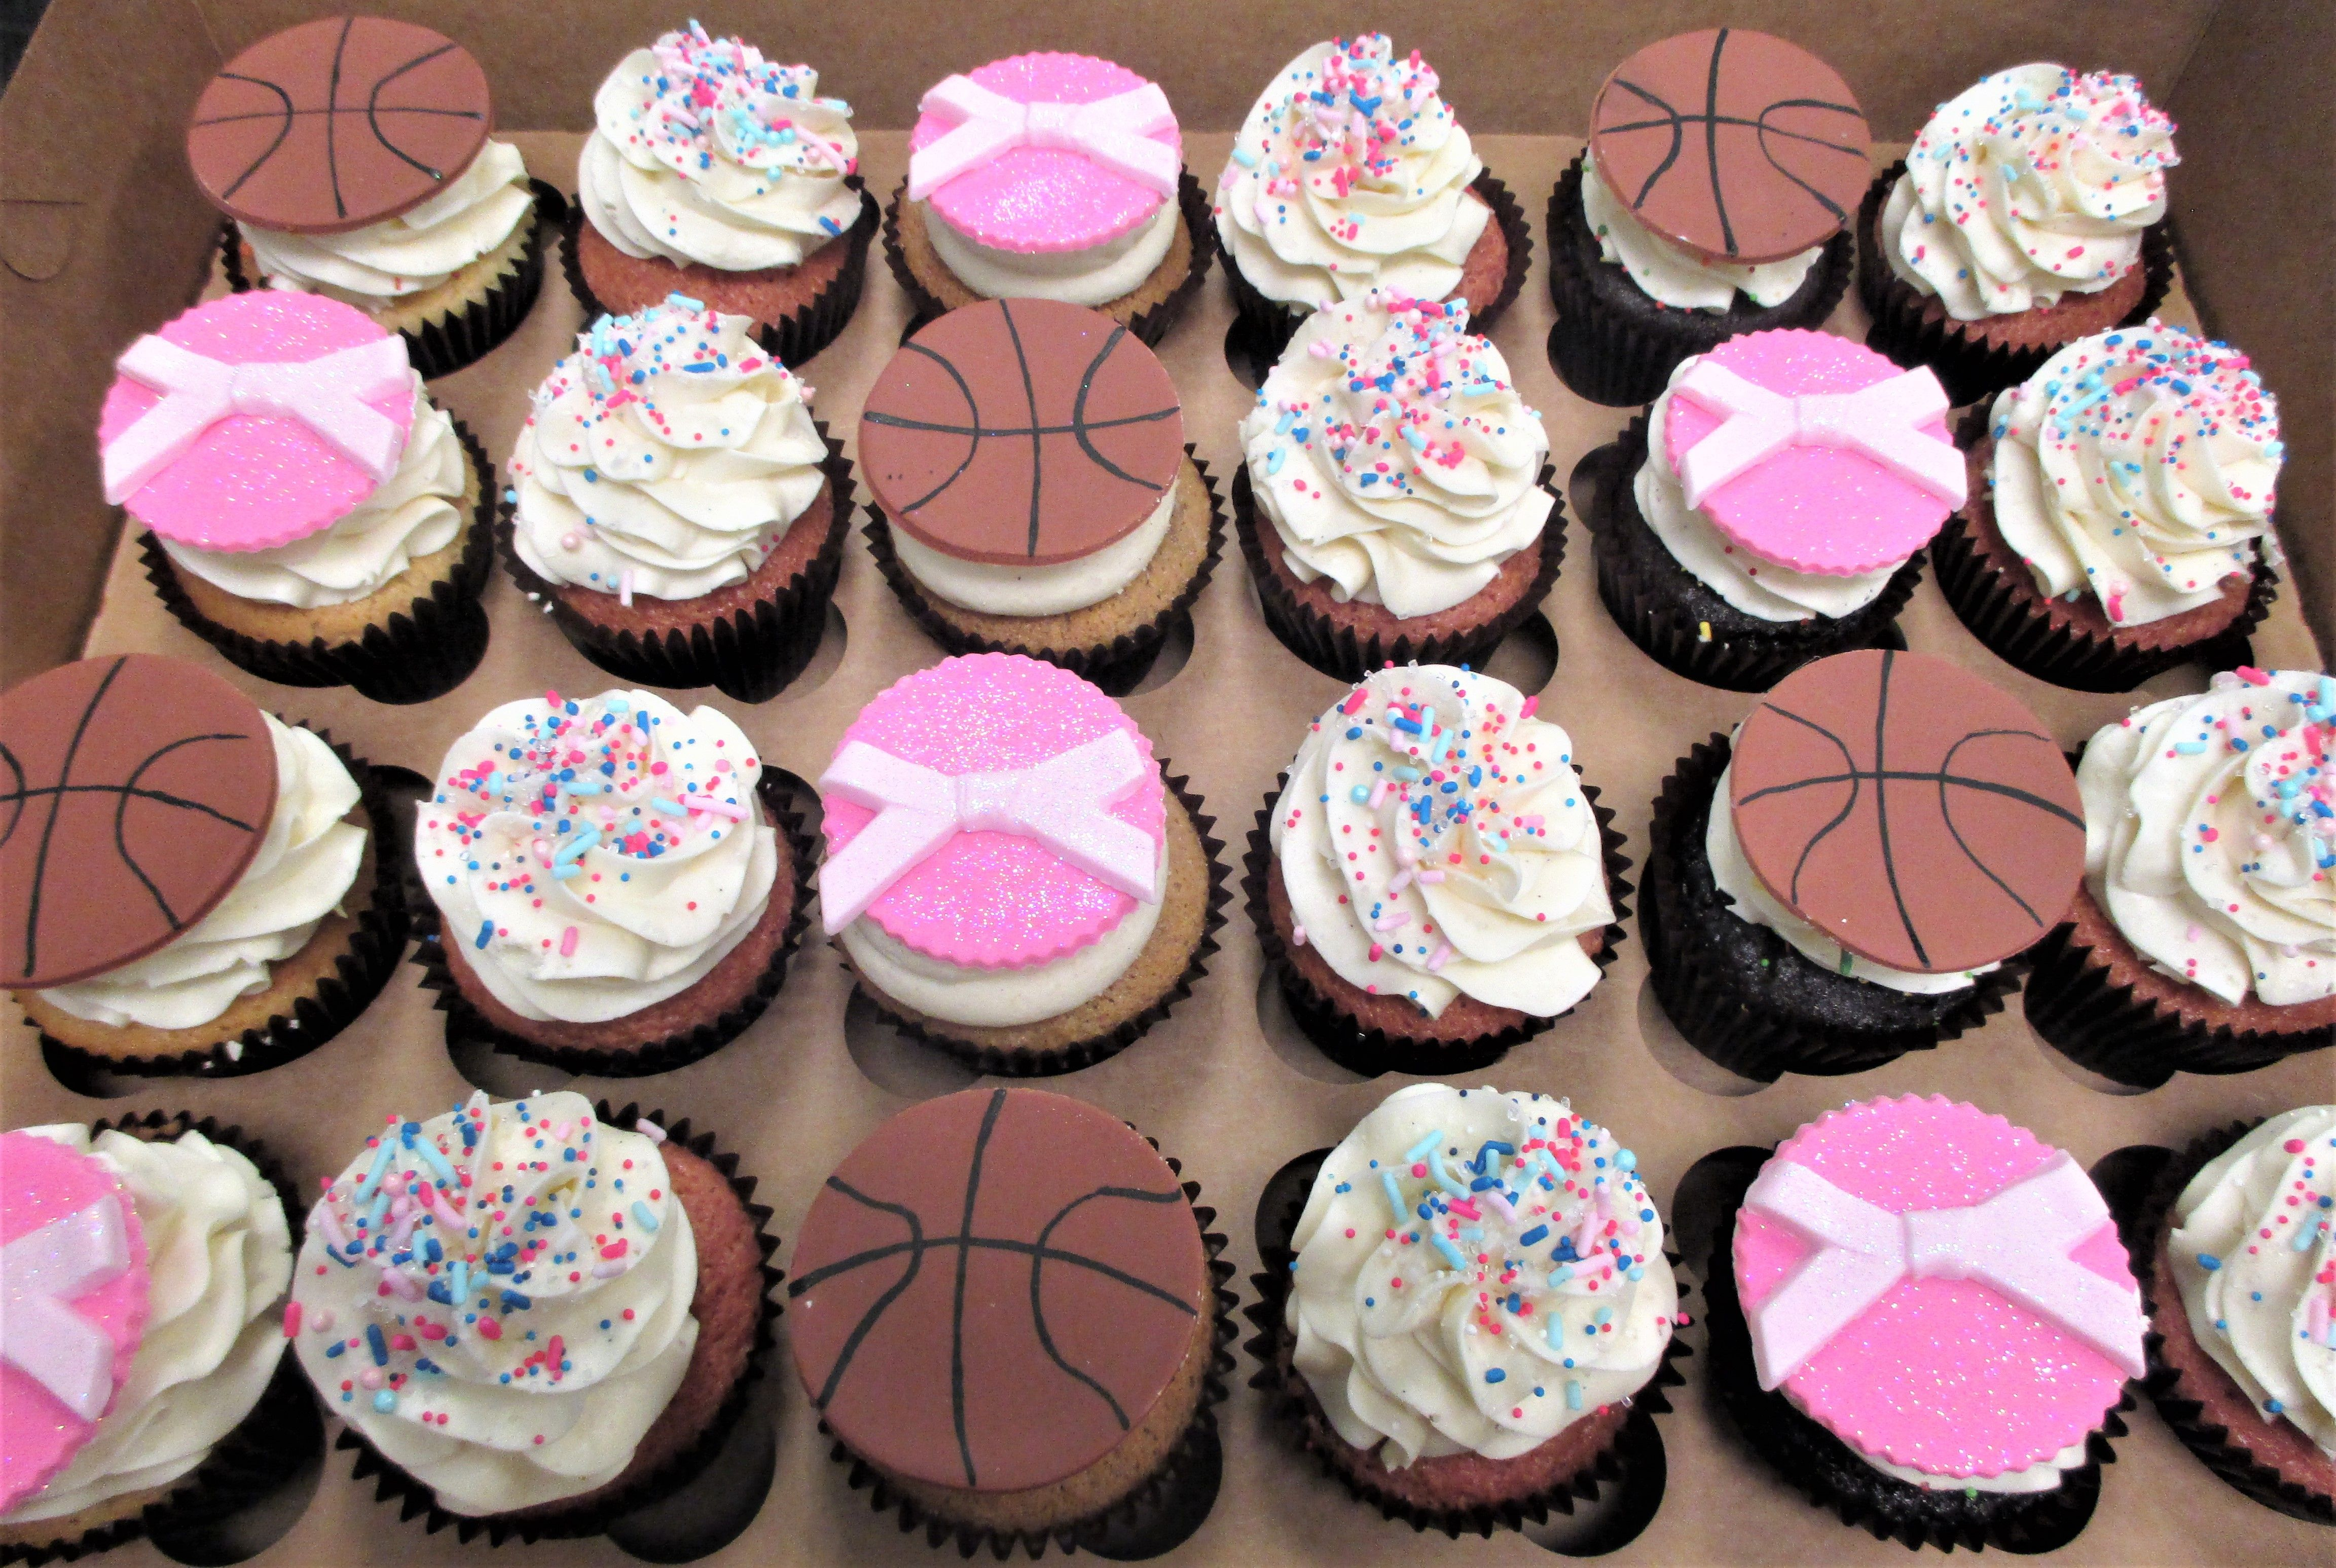 Custom Gender Reveal Basketballs Or Bows Cupcakes By Flavor Cupcakery Gender Reveal Cake Gender Reveal Party Decorations Bow Cupcakes